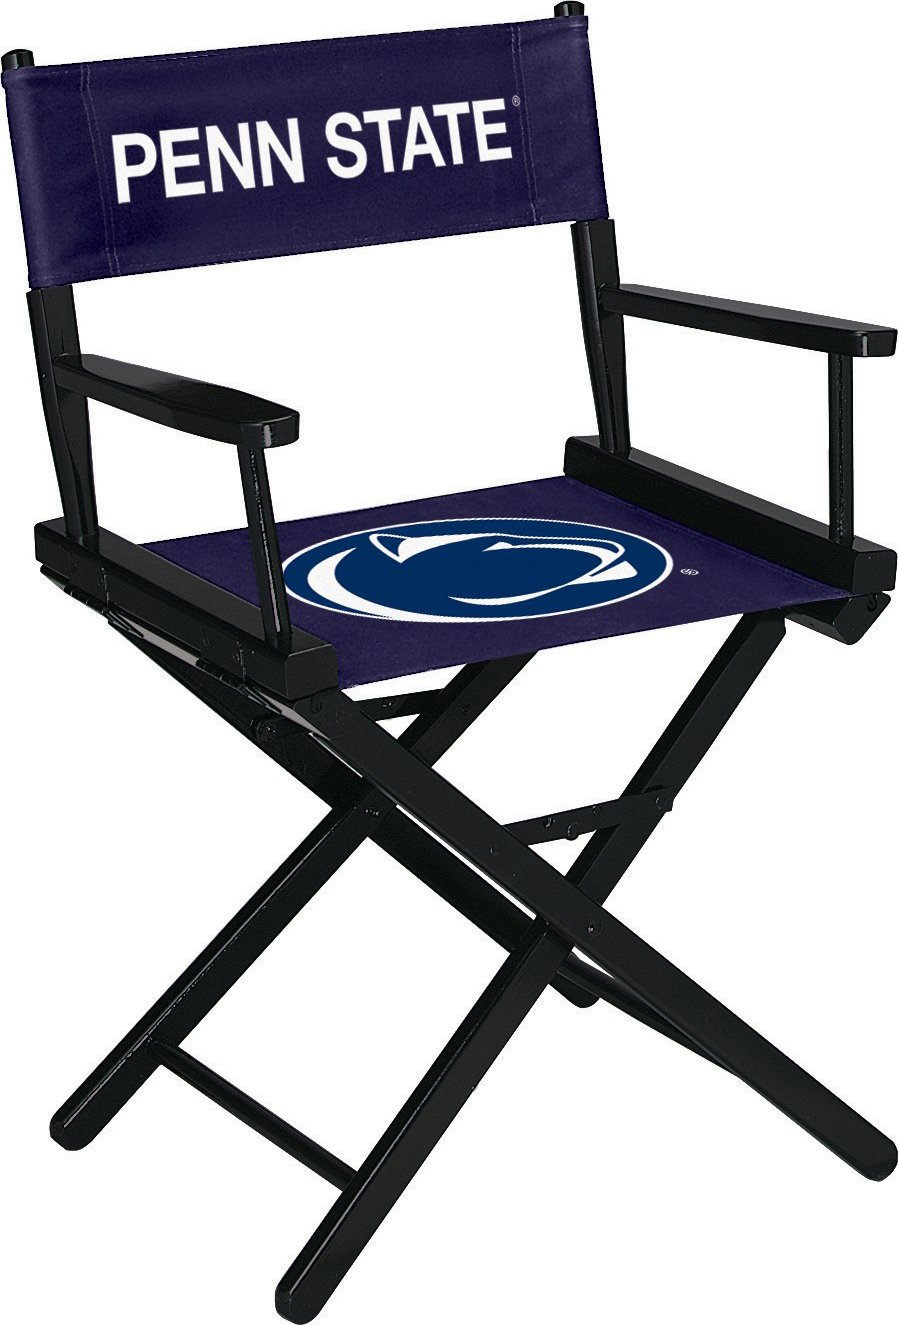 Imperial Officially Licensed NCAA Merchandise: Directors Chair (Short, Table Height), Penn State Nittany Lions